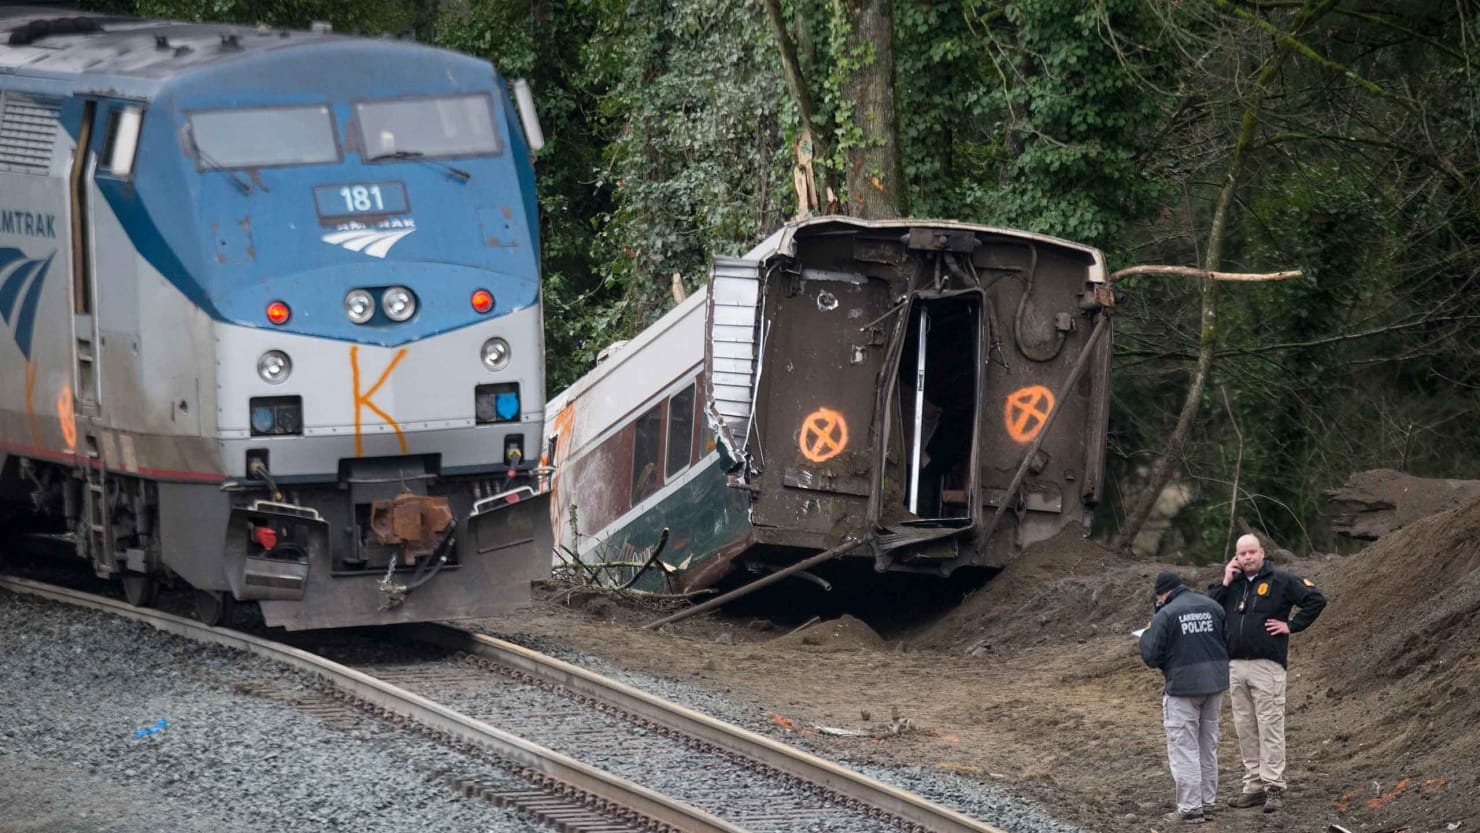 Toyota Of Glendale >> Amtrak Train Crash Brought Out Trump's Worst—and NTSB's Best